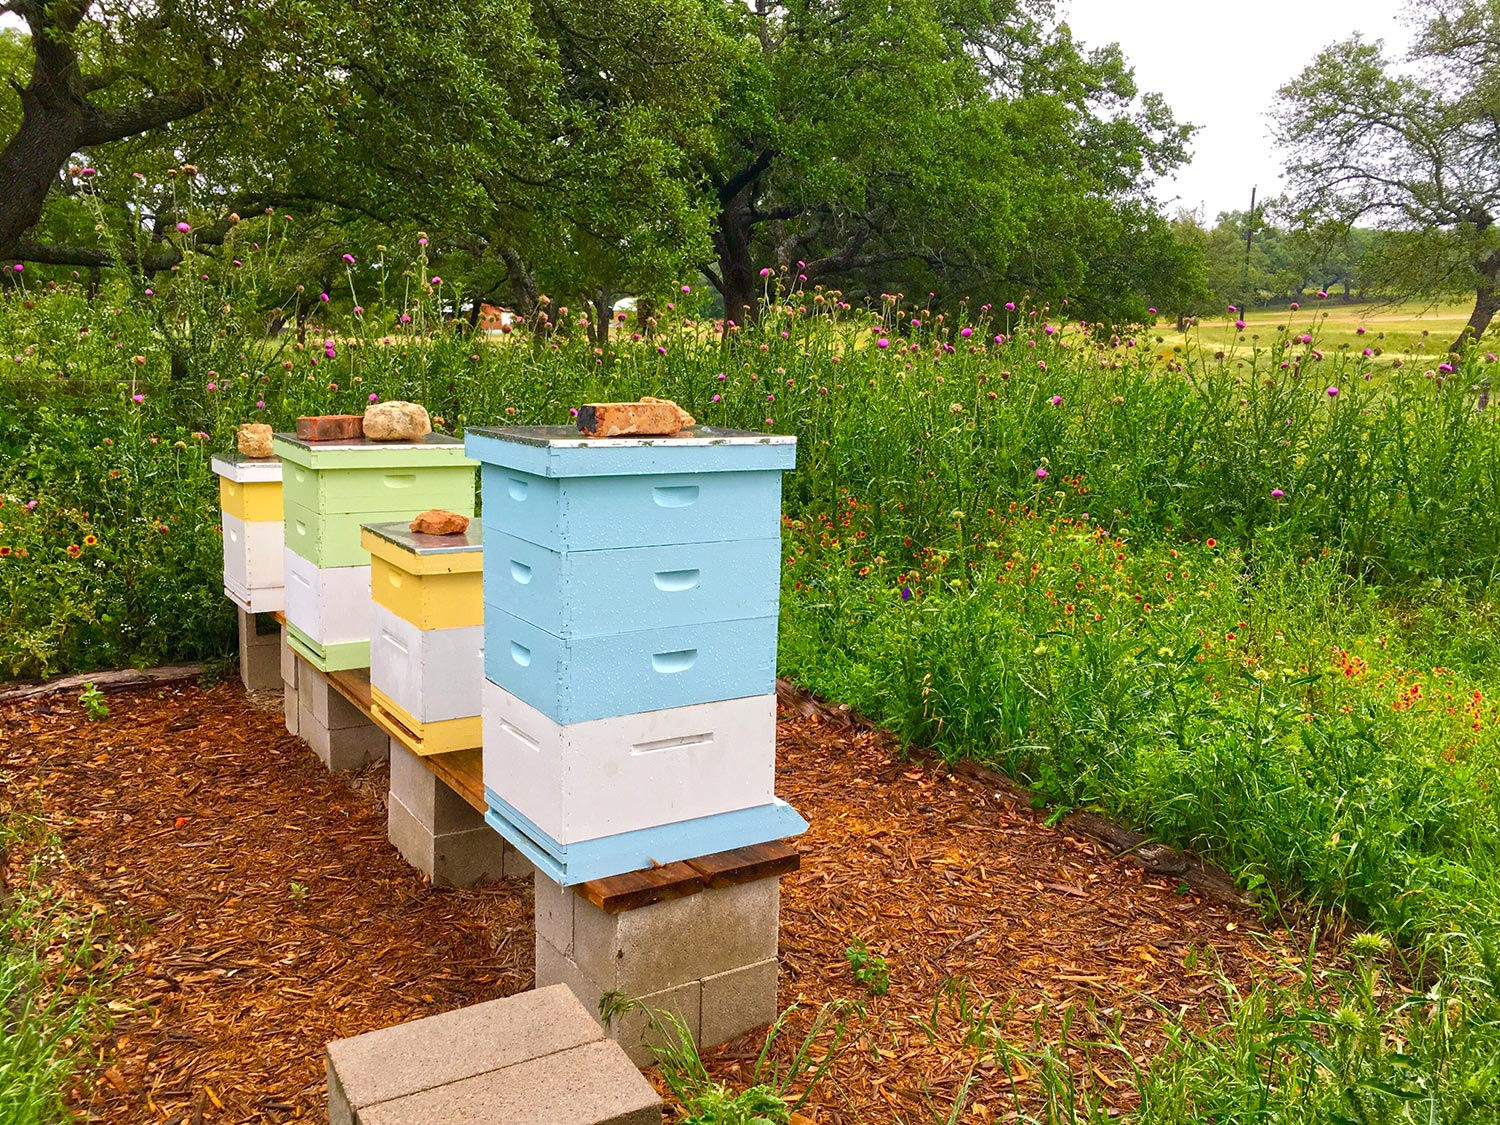 HIves and tall flowers - bees - Hye Honey